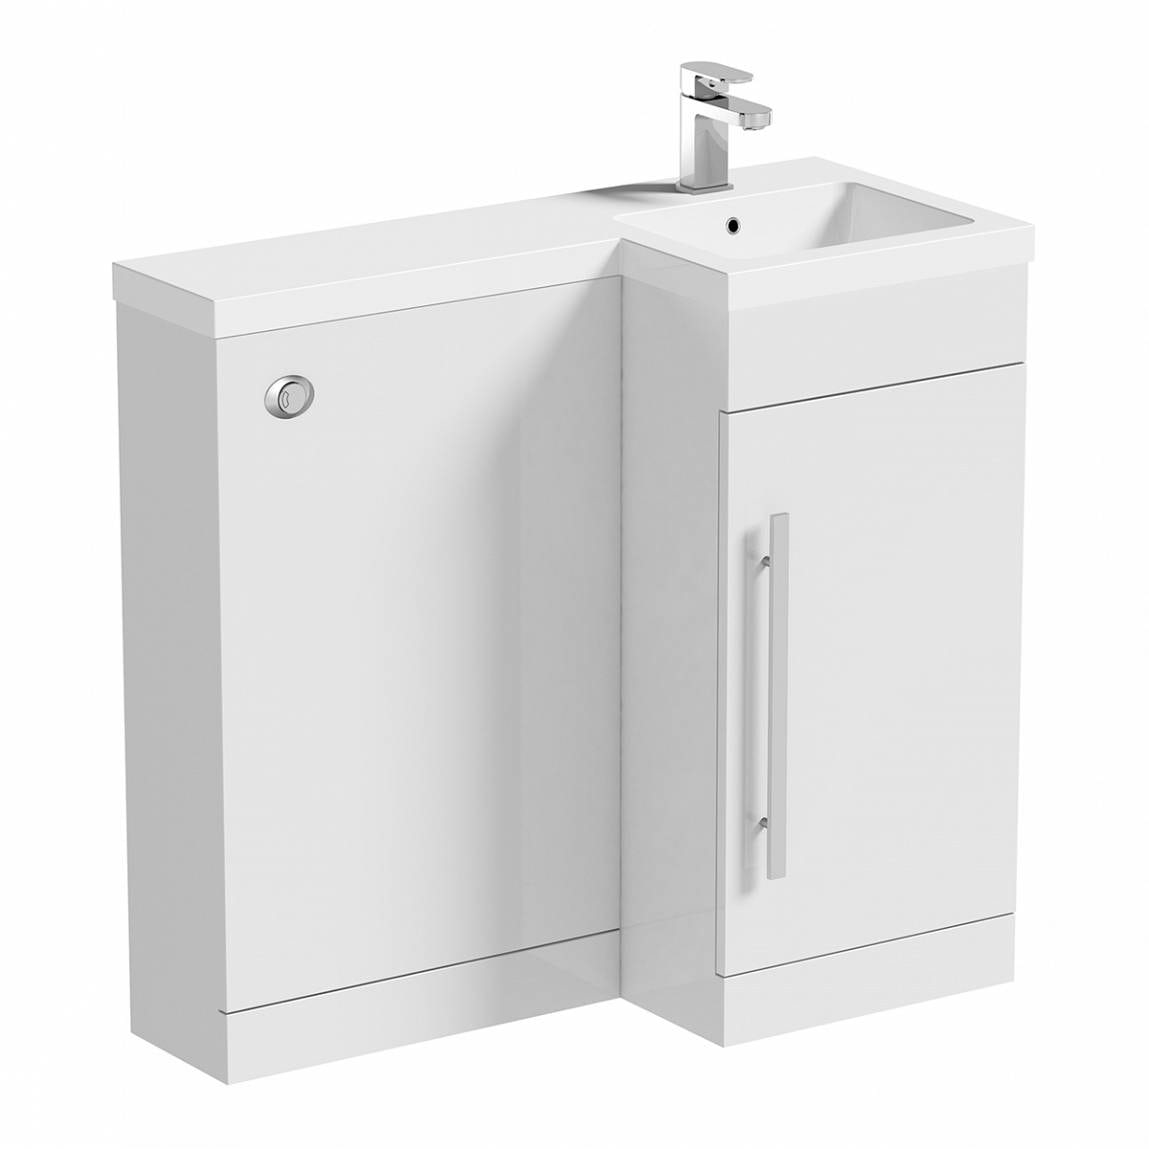 Orchard MySpace white right handed unit including concealed cistern